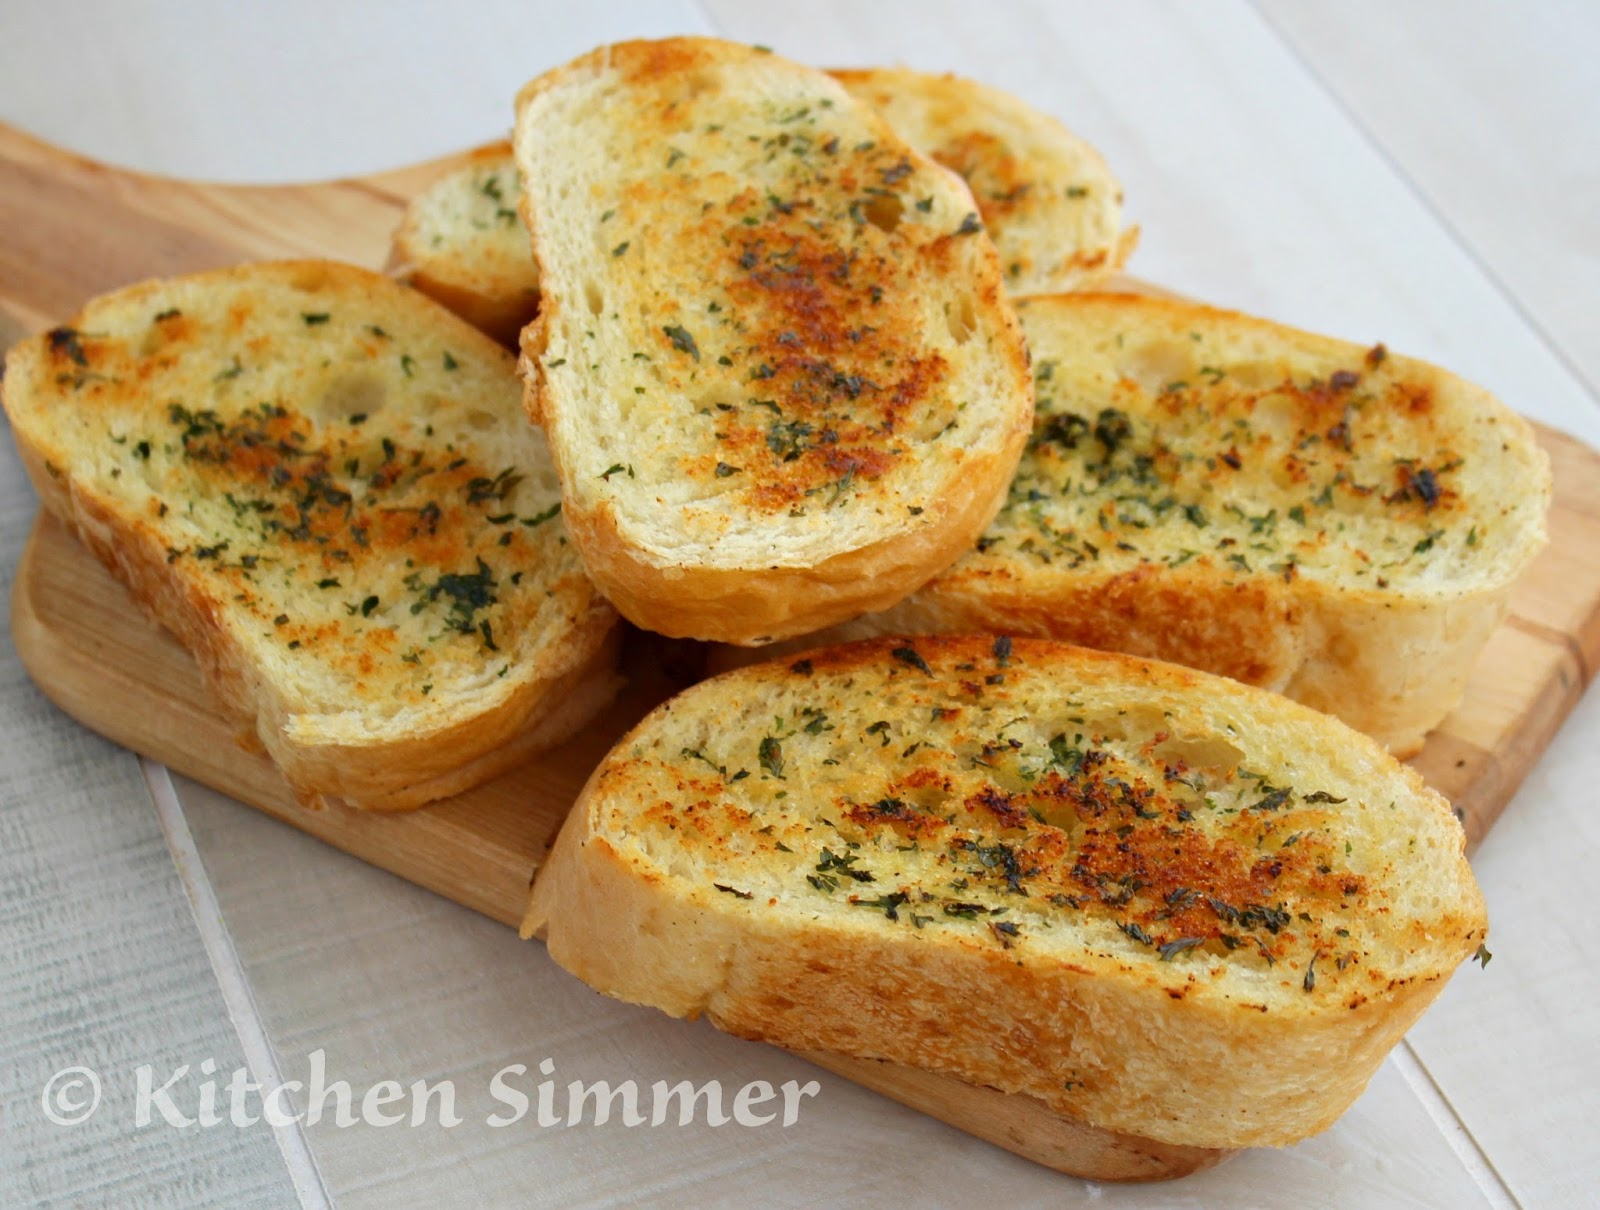 Kitchen Simmer: Quick Skillet Garlic Bread